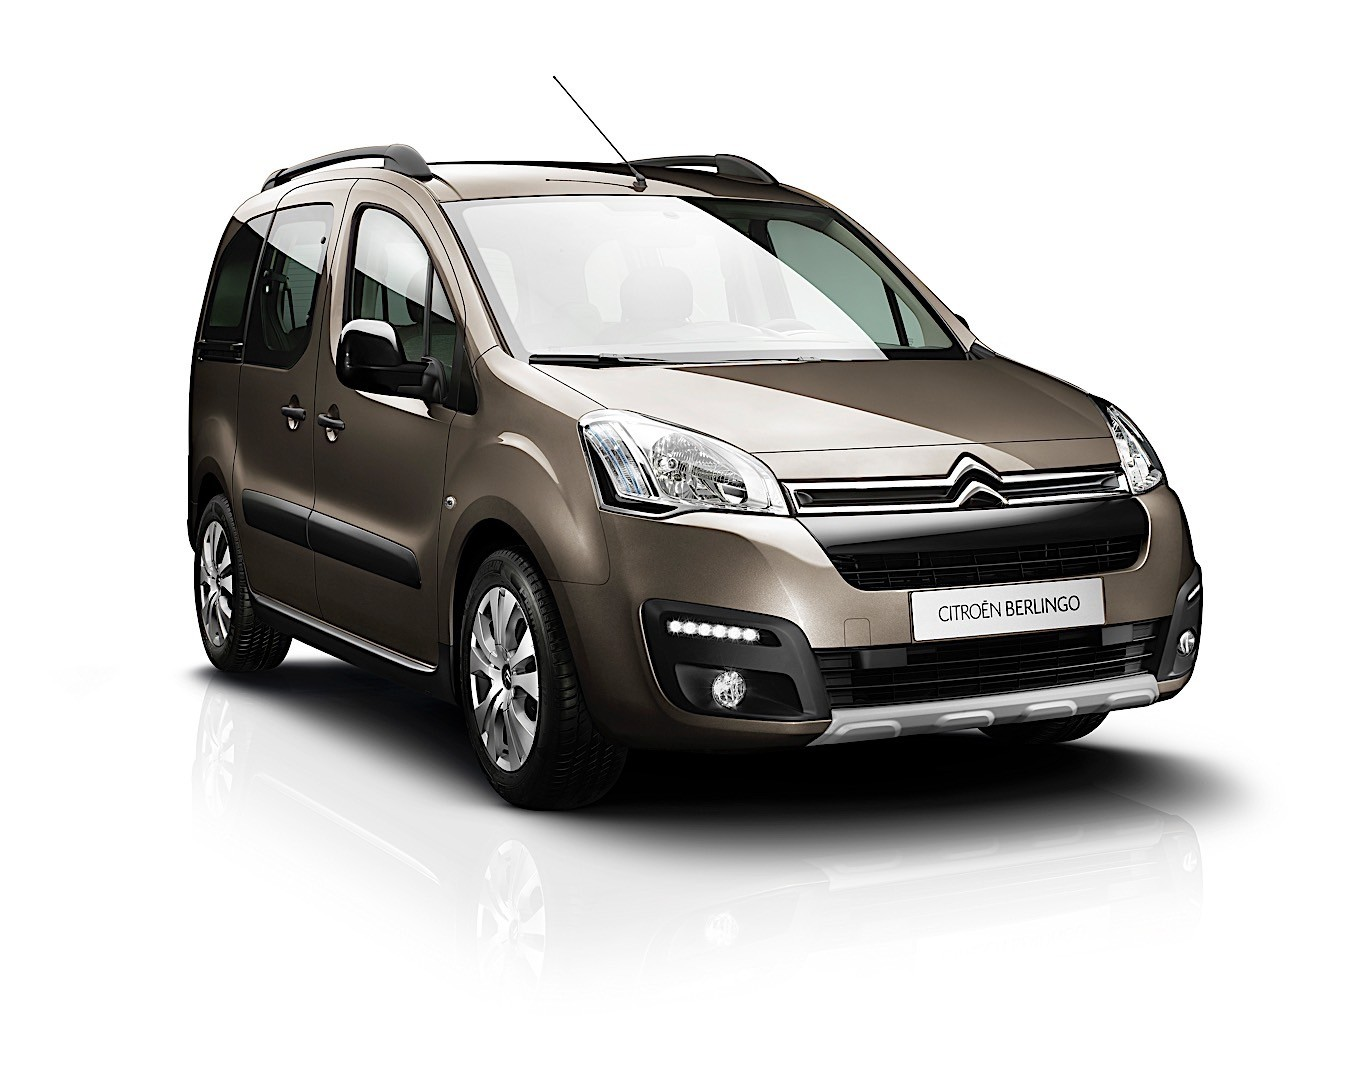 citroen berlingo specs 2015 2016 2017 2018. Black Bedroom Furniture Sets. Home Design Ideas